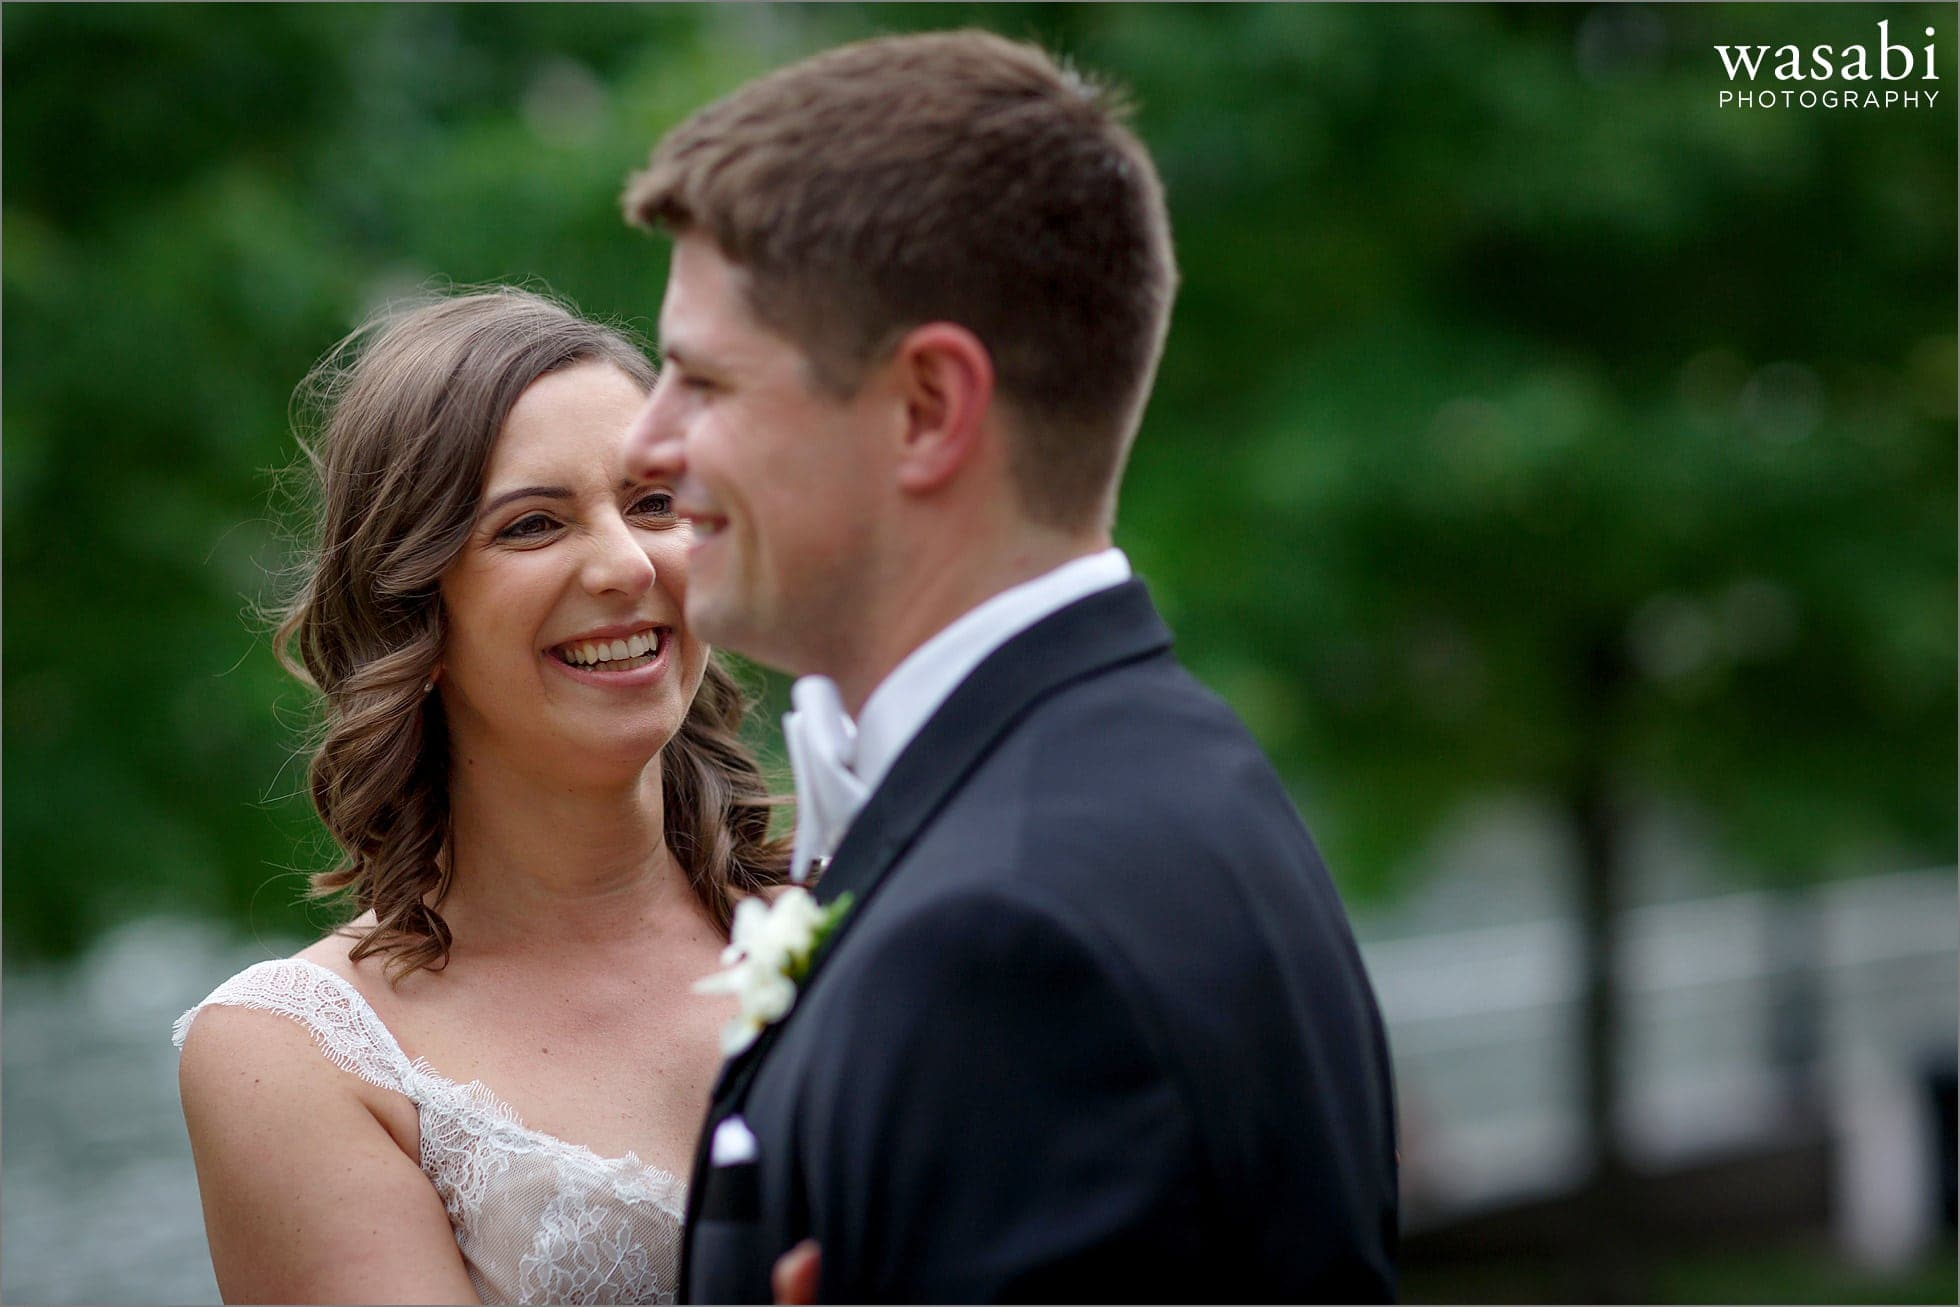 bride reacts after seeing her groom during first look at Chicago riverwalk with ivy in the background